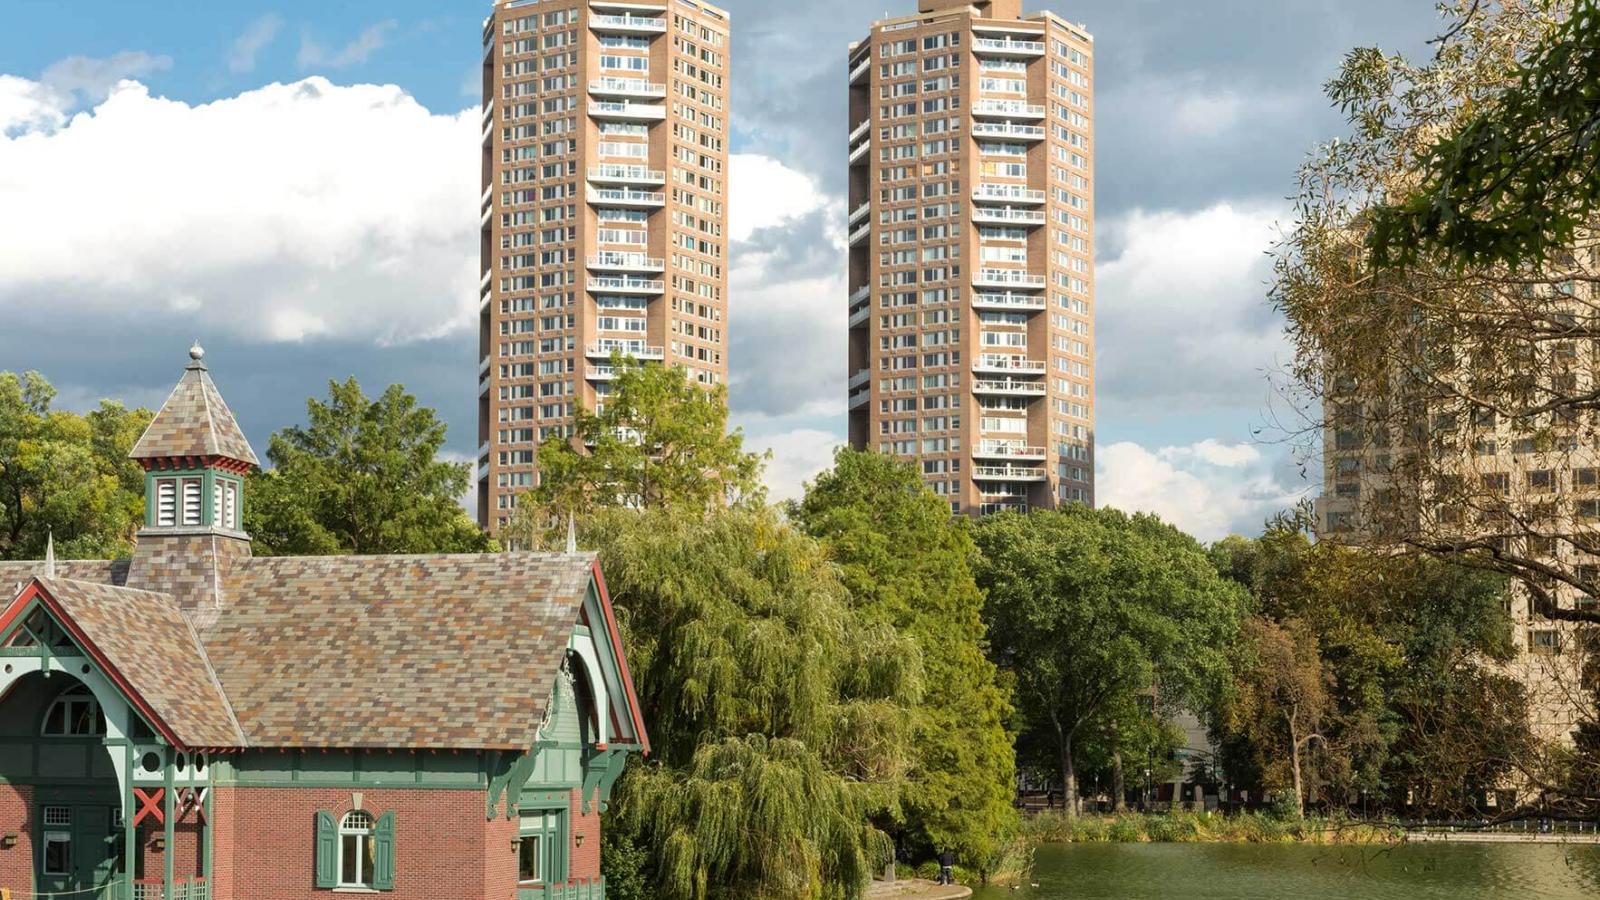 Two high-rise octagonal apartment buildings